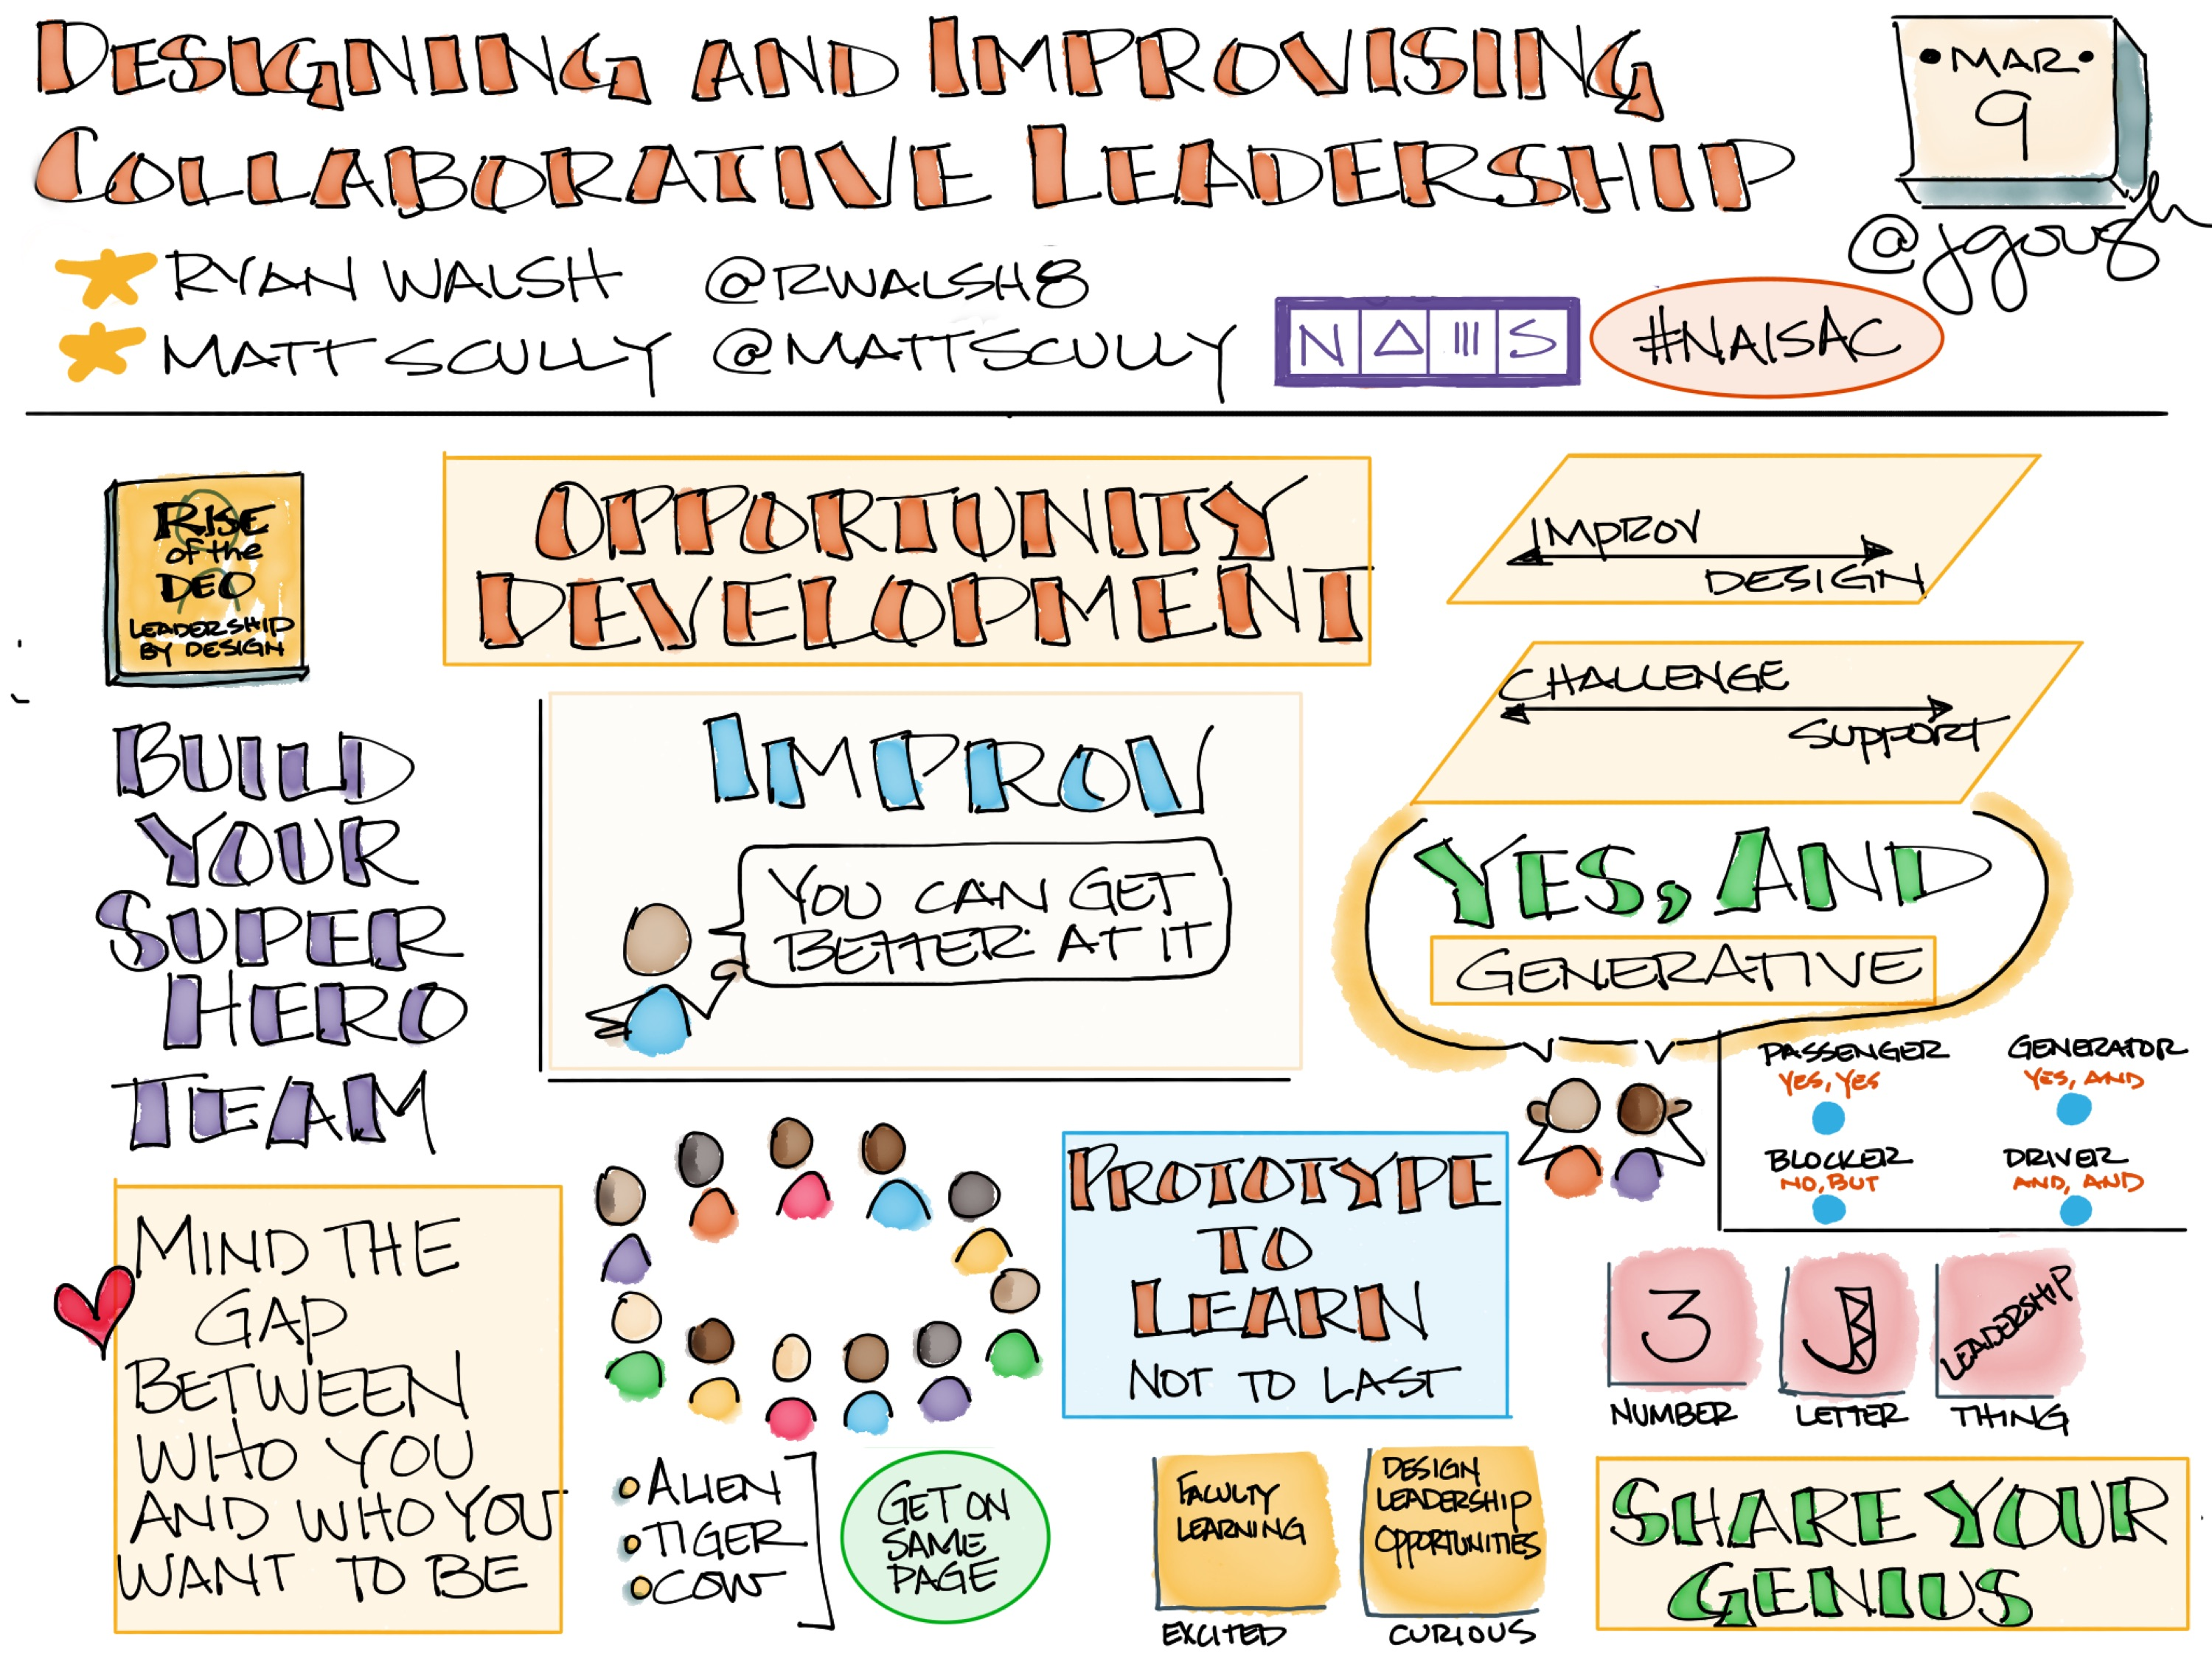 Designing and Improvising Collaborative Leadership from @RWalsh8 @MattScully #NAISAC